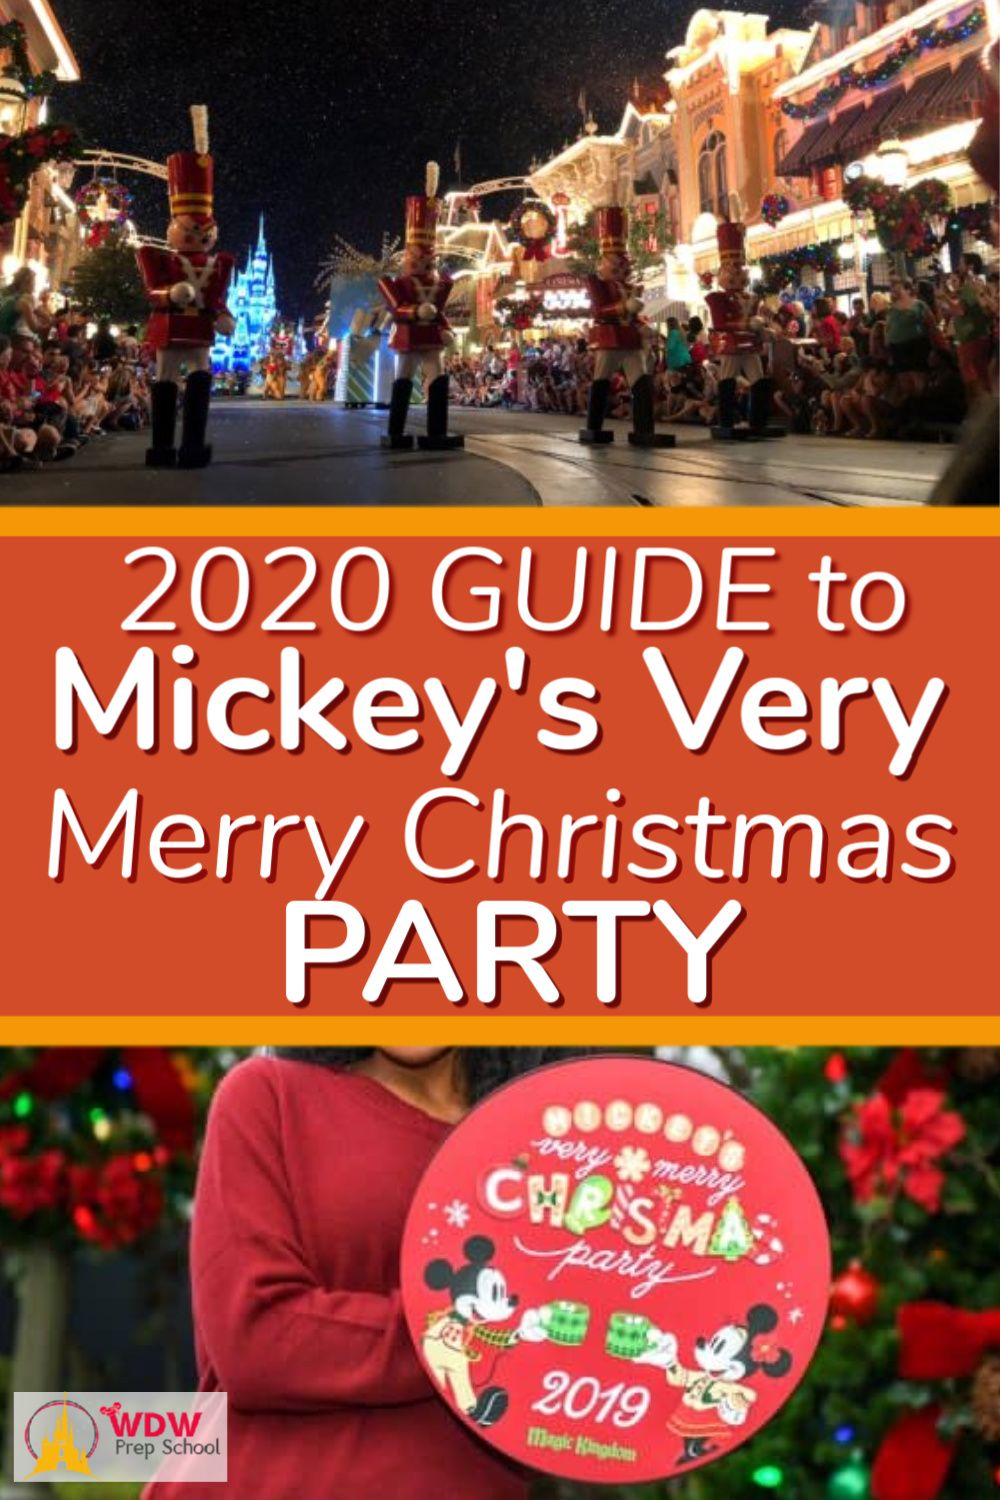 Mickeys Very Merry Christmas Party 2020 Dates 2020 Guide to Mickey's Very Merry Christmas Party in 2020